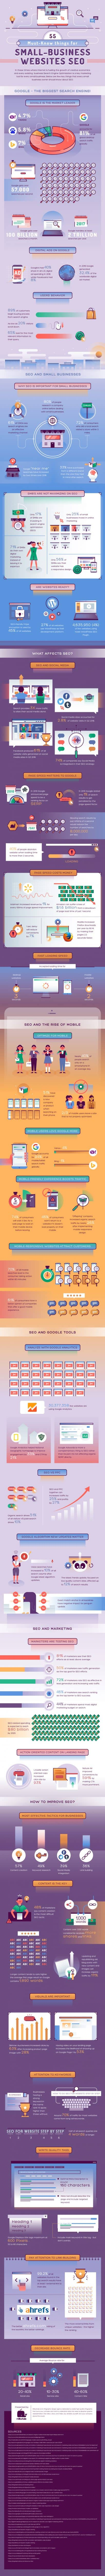 infographic containing 55 SEO tips for businesses